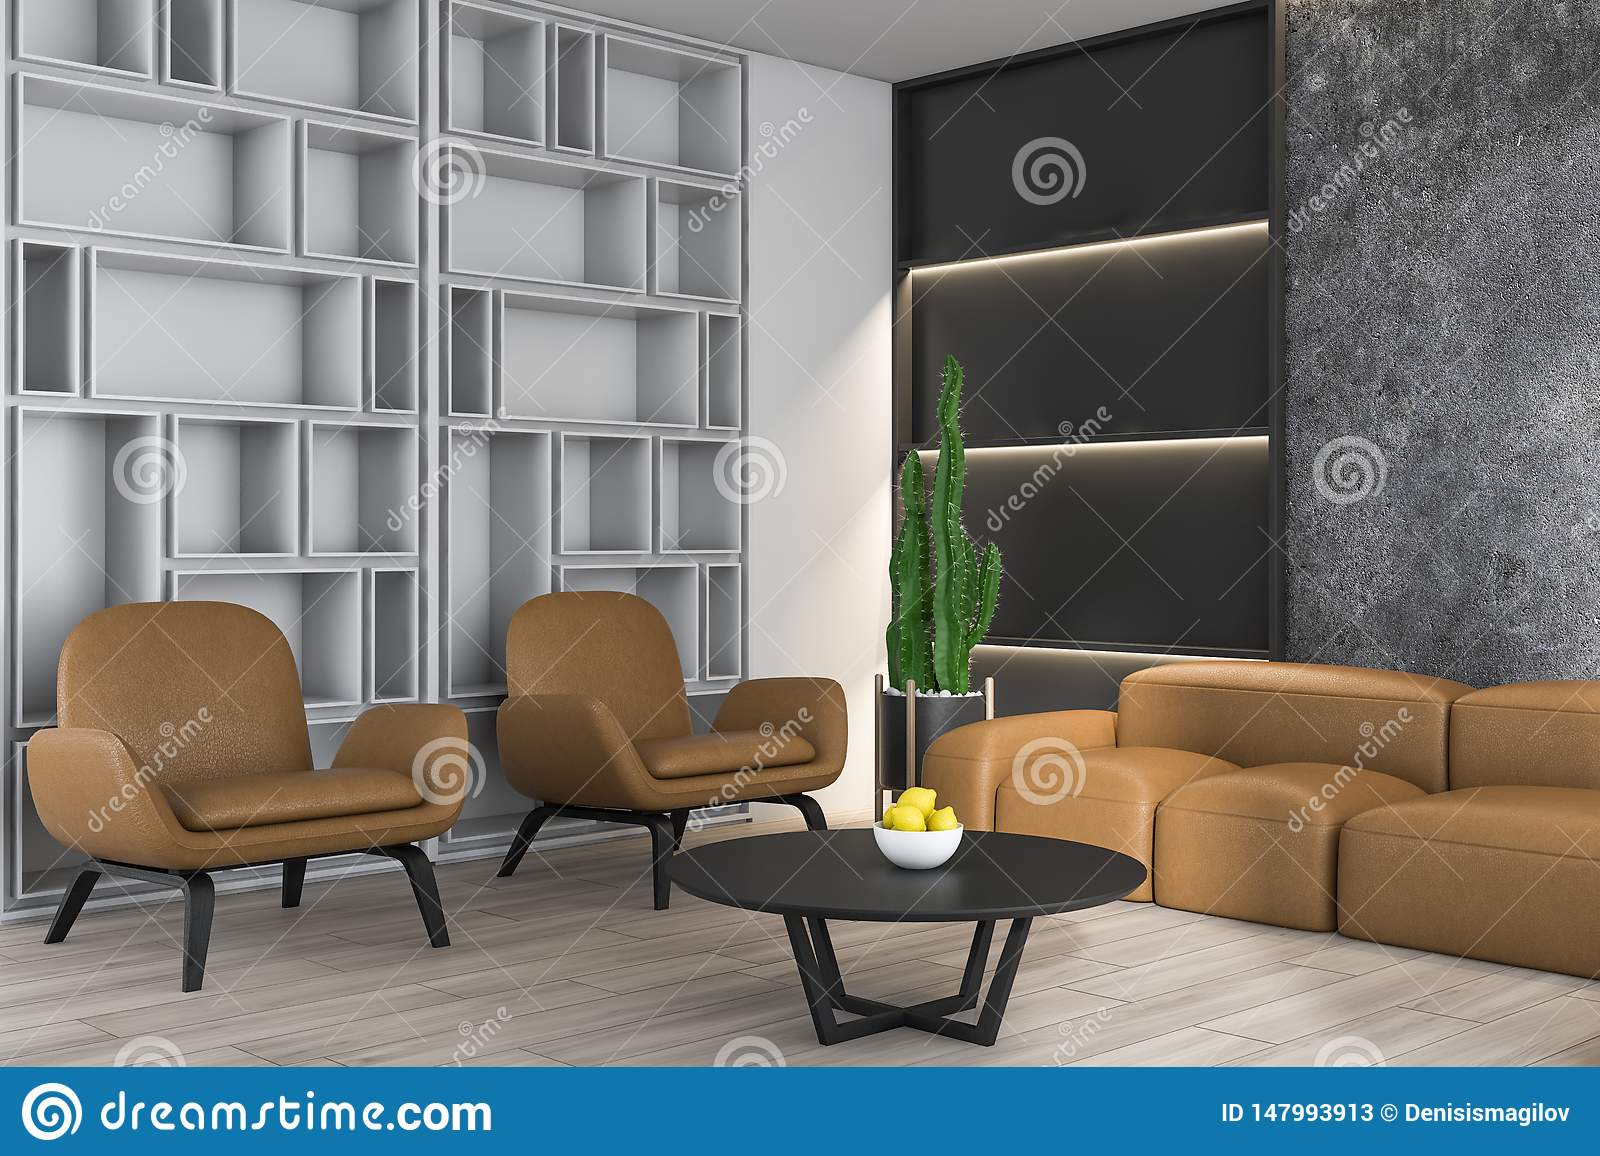 Concrete Living Room With Sofa And Bookcase Stock